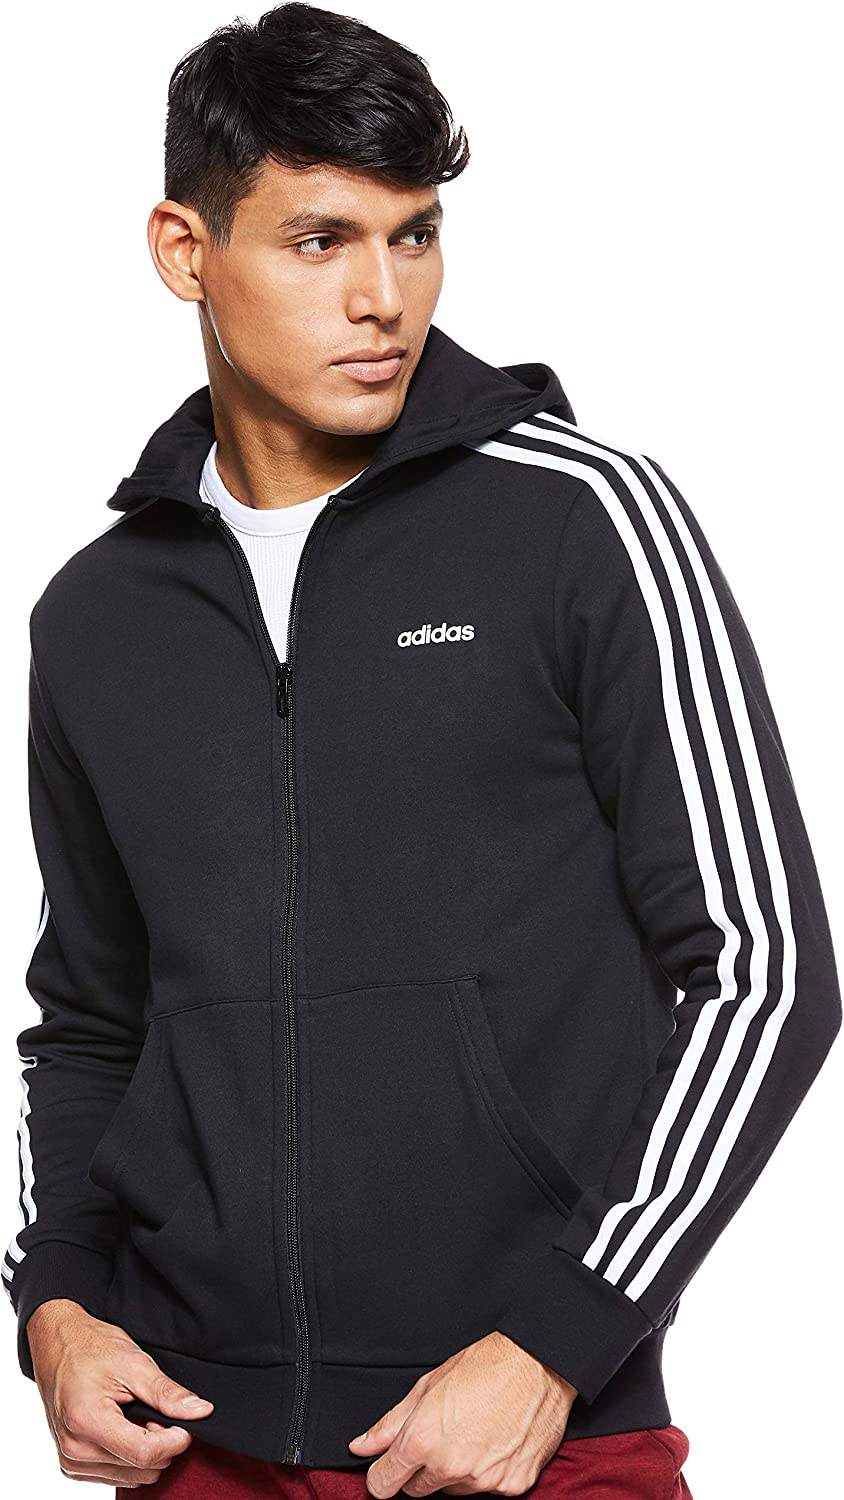 Veste à capuche junior femme adidas Essentials 3 Stripes